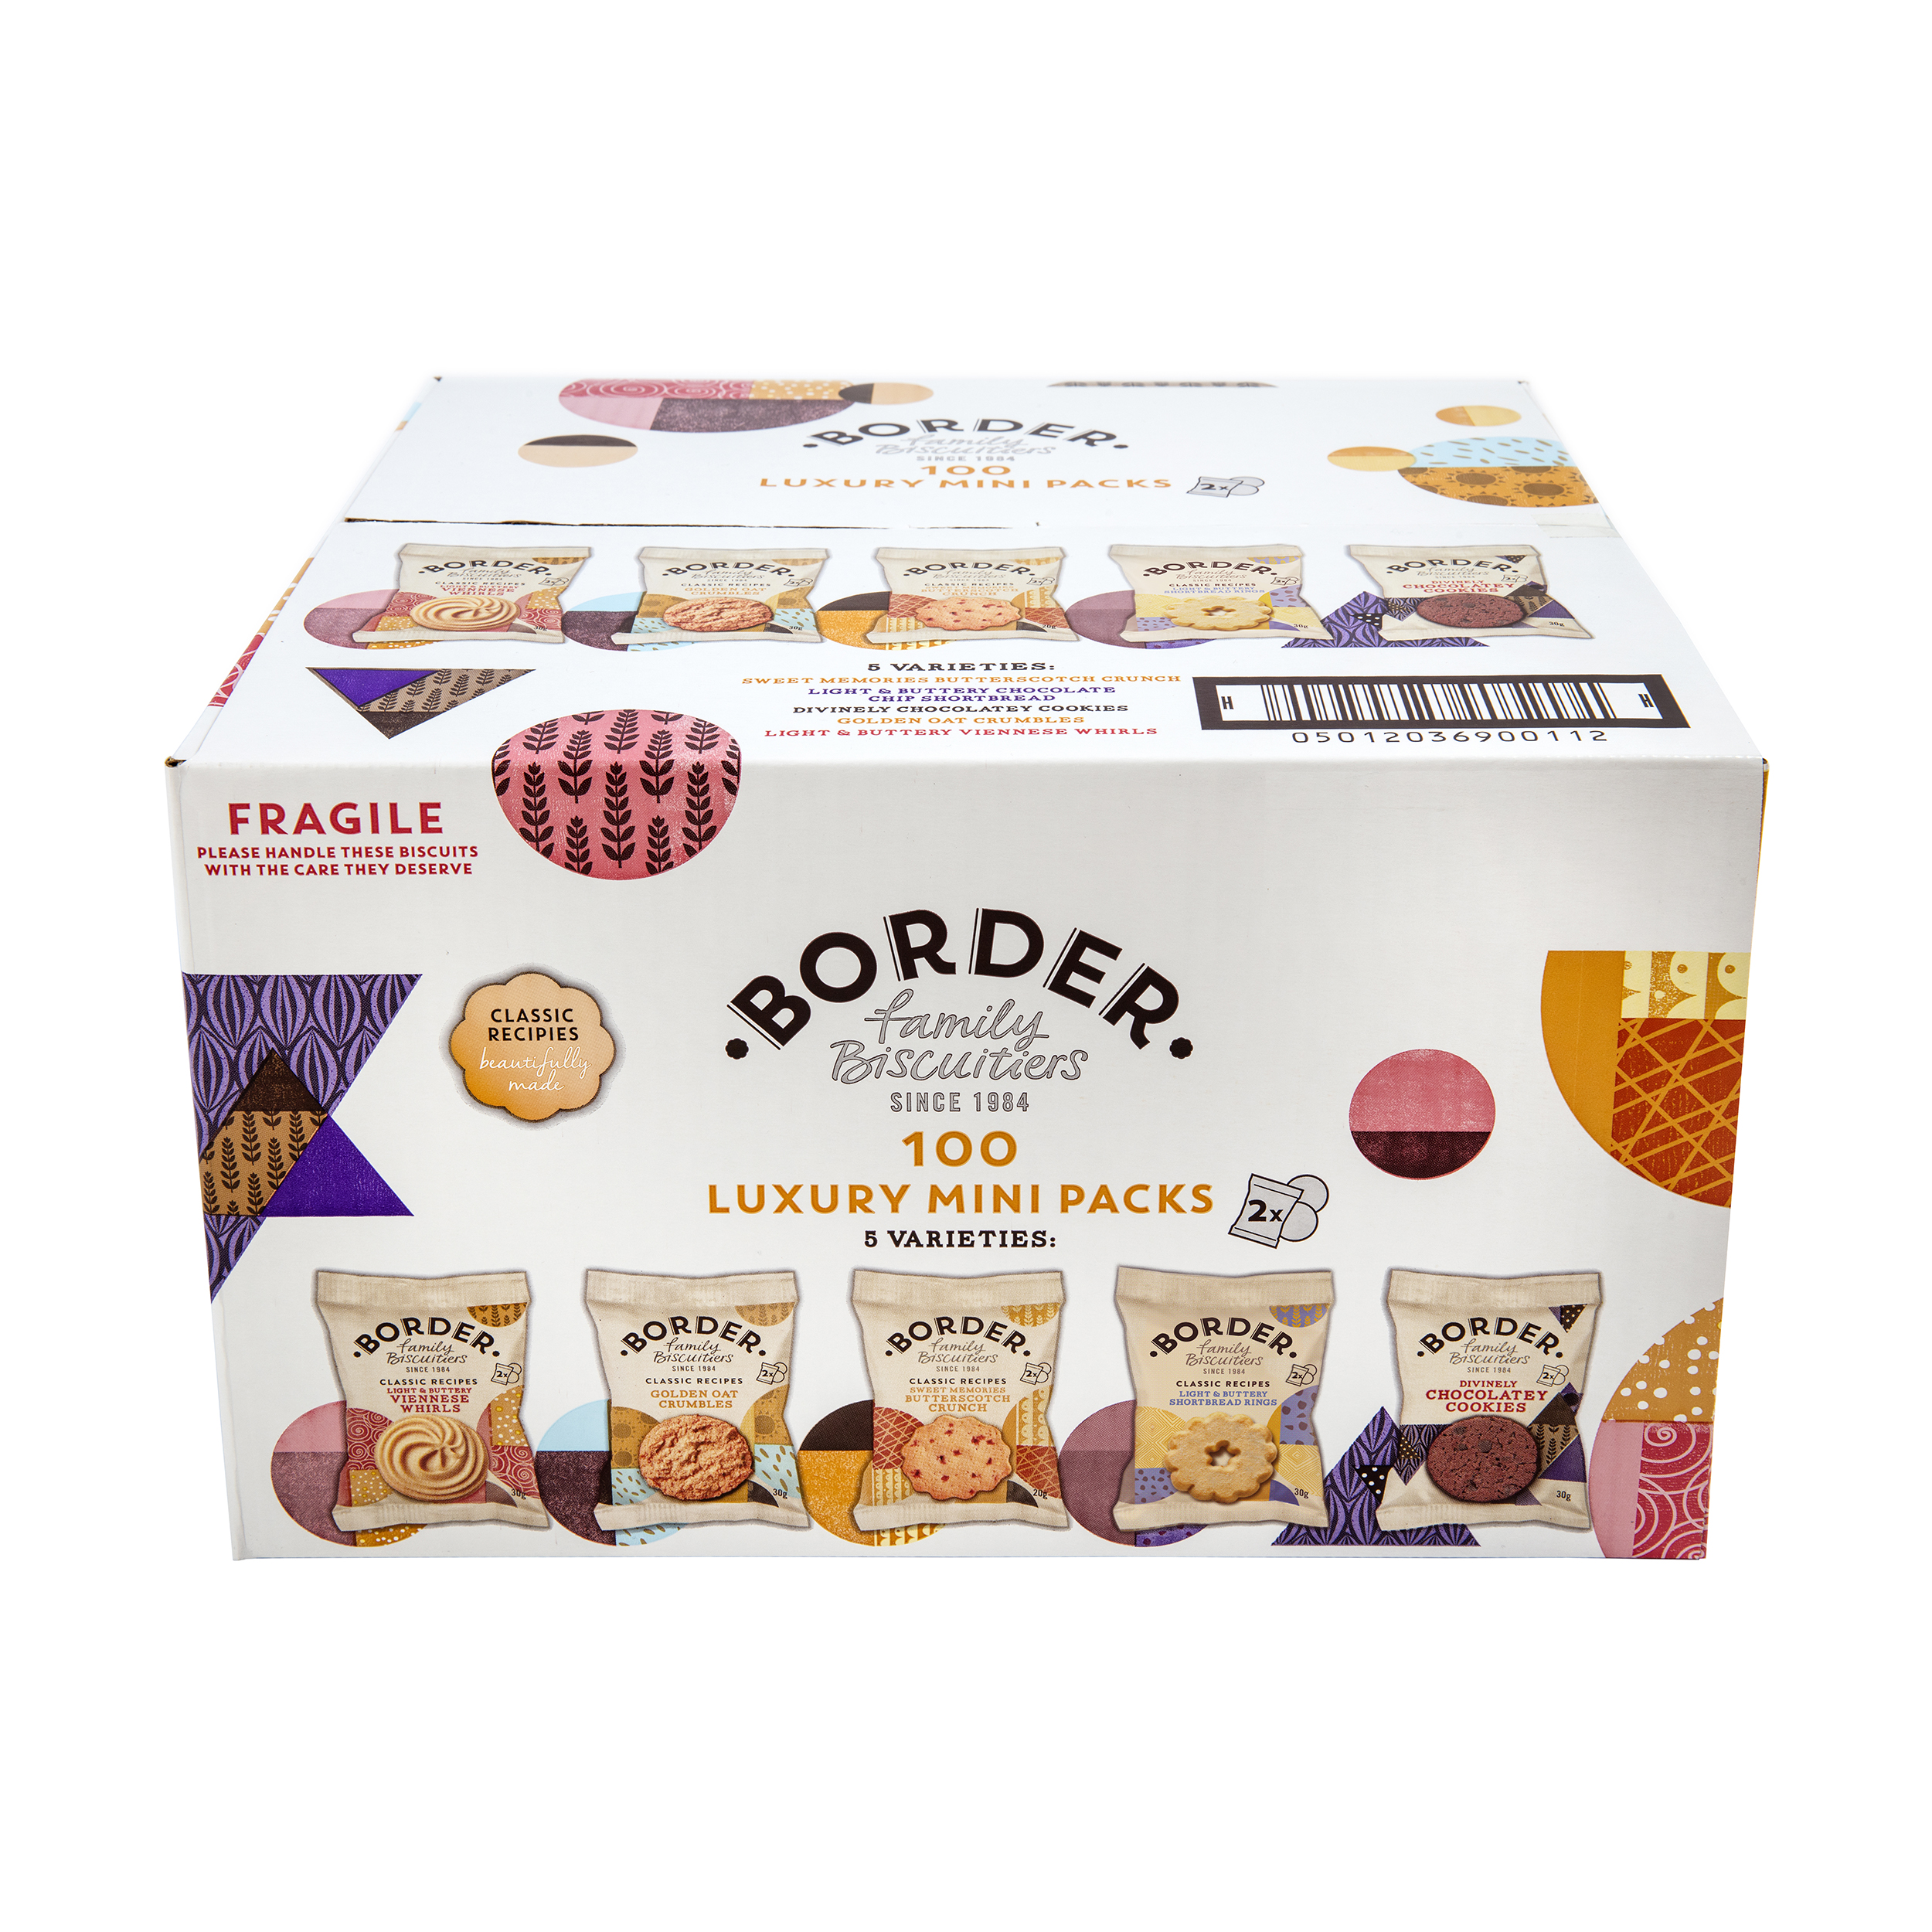 Biscuits Border Luxury Biscuits 5 Varieties Mini Twinpack Ref 0401049 Pack 100